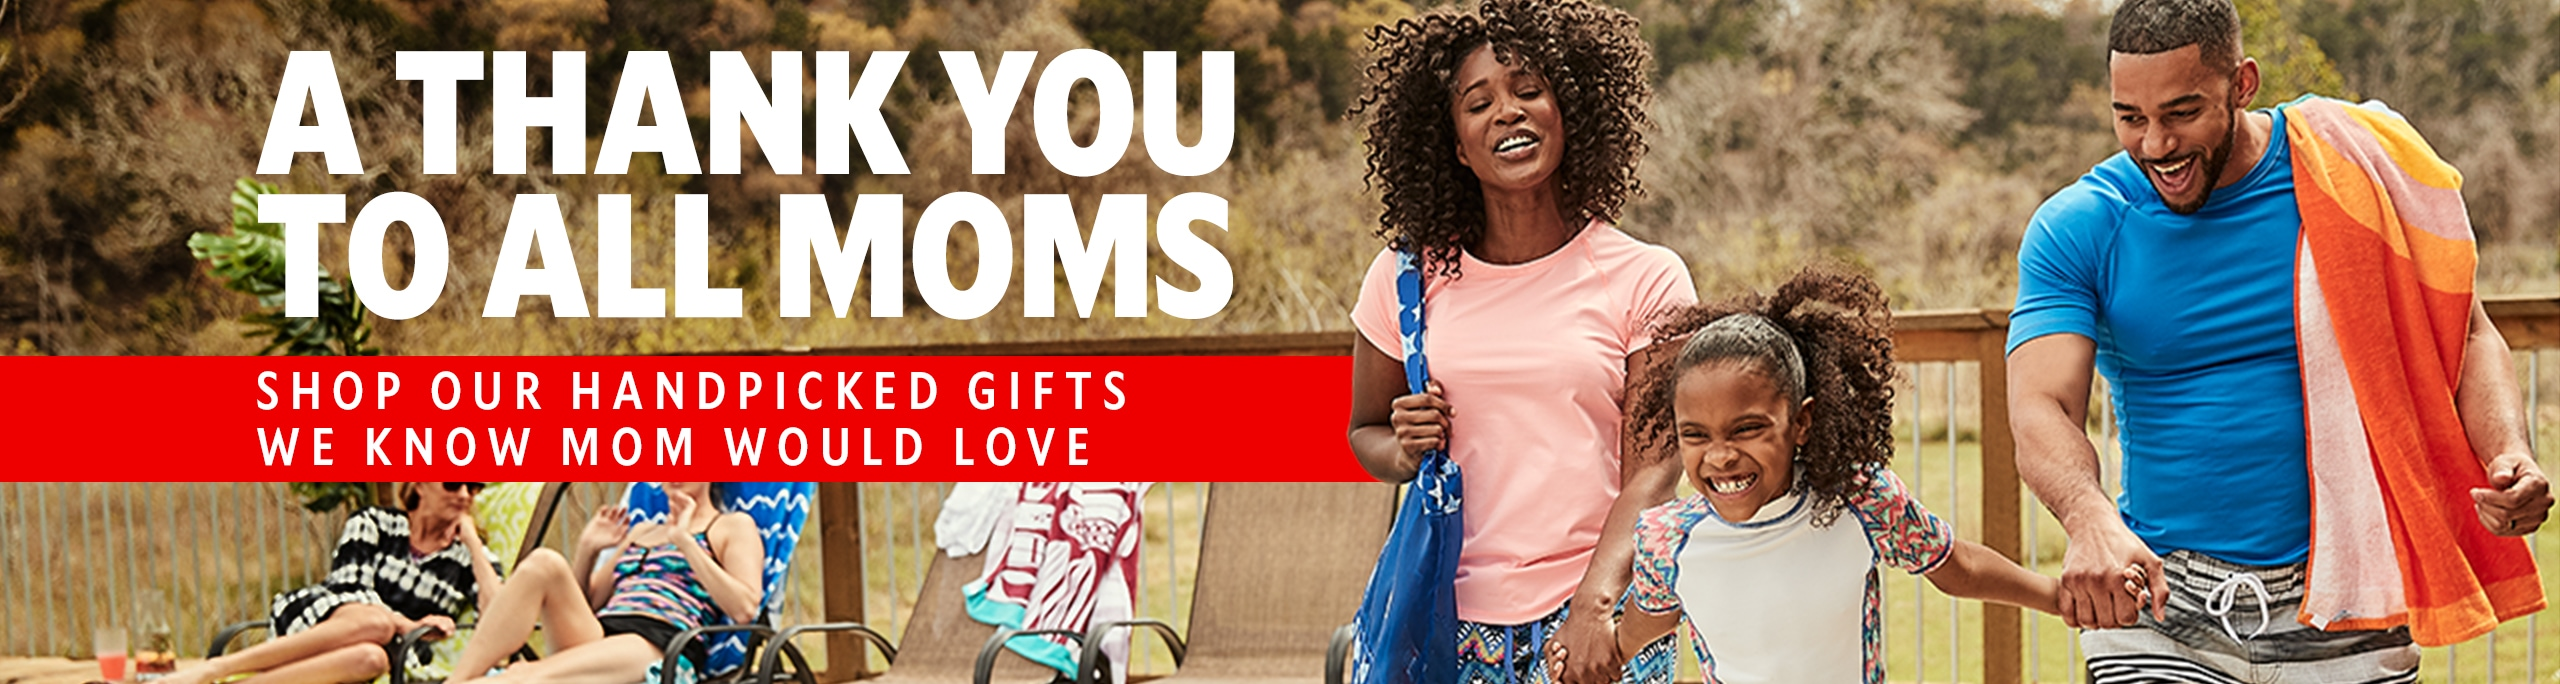 Mothers Day Event, A Thank You To All Moms, Shop Our Handpicked Gifts We Know Mom Would Love